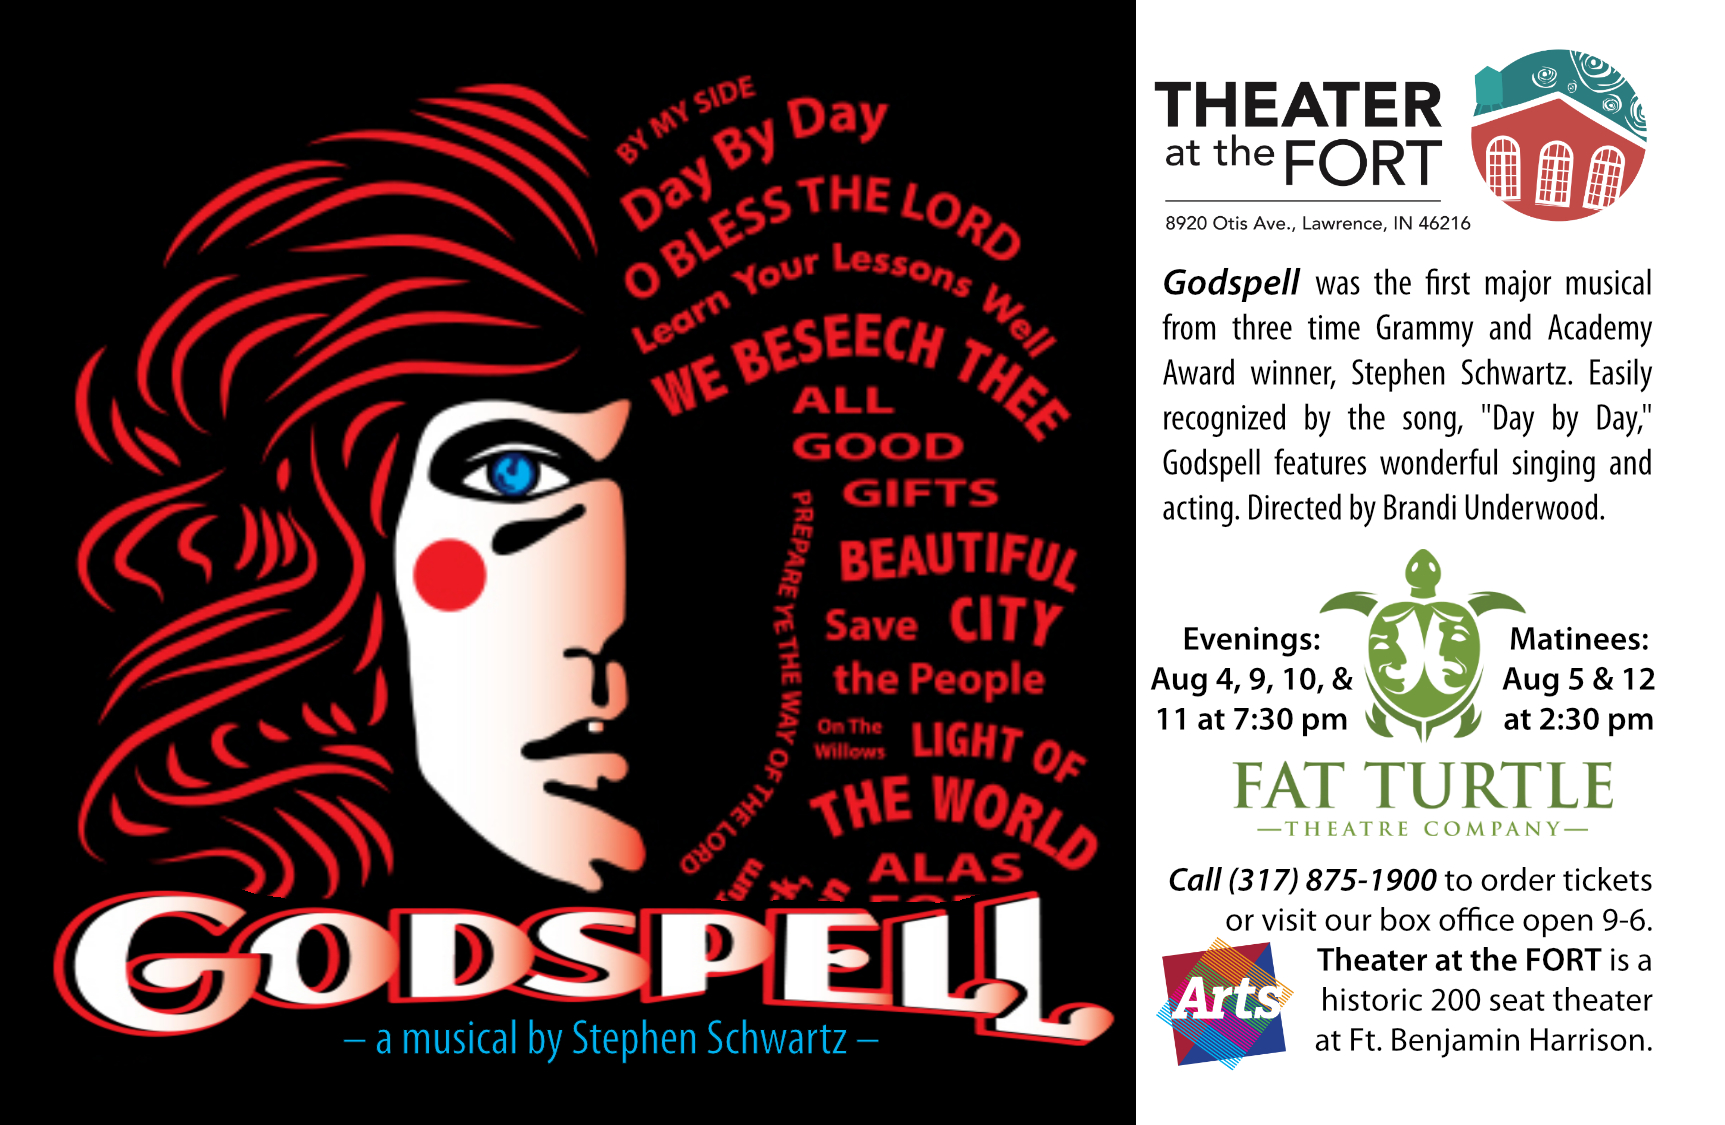 GODSPELL presented by Arts for Lawrence, Fat Turtle Theatre